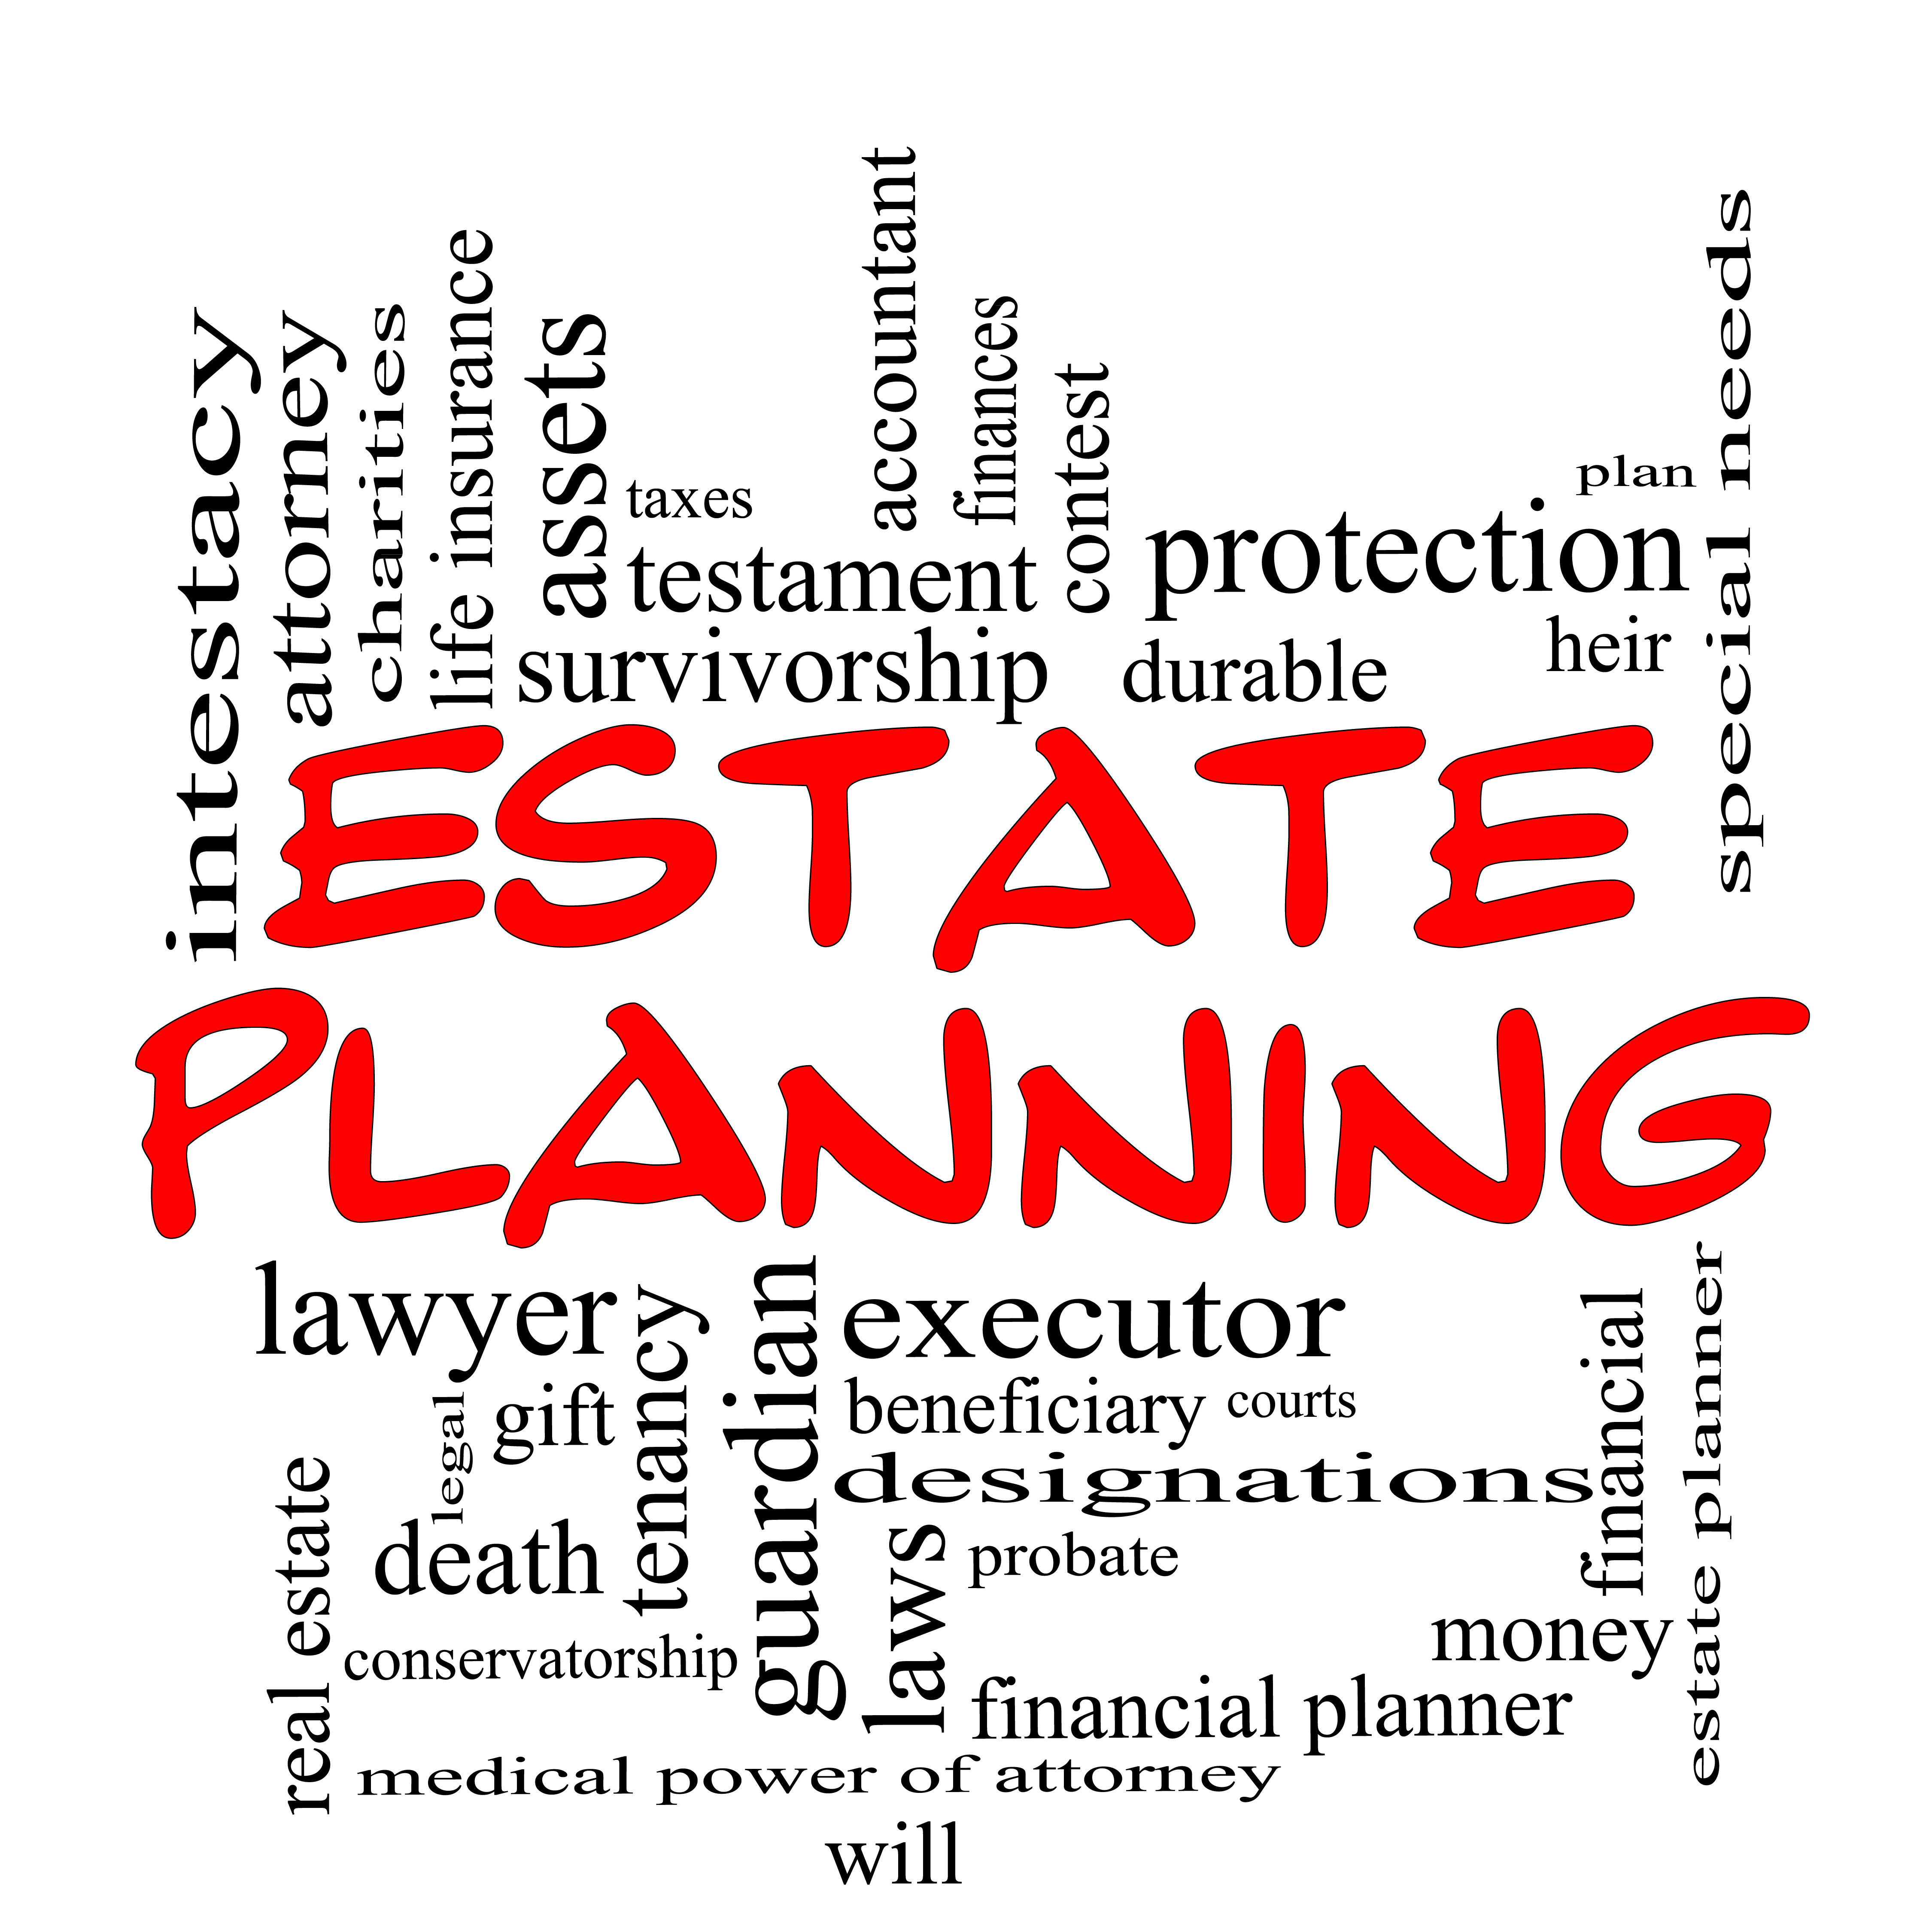 Estate Planning: Married Seniors Favor A-B Trusts For Wealth